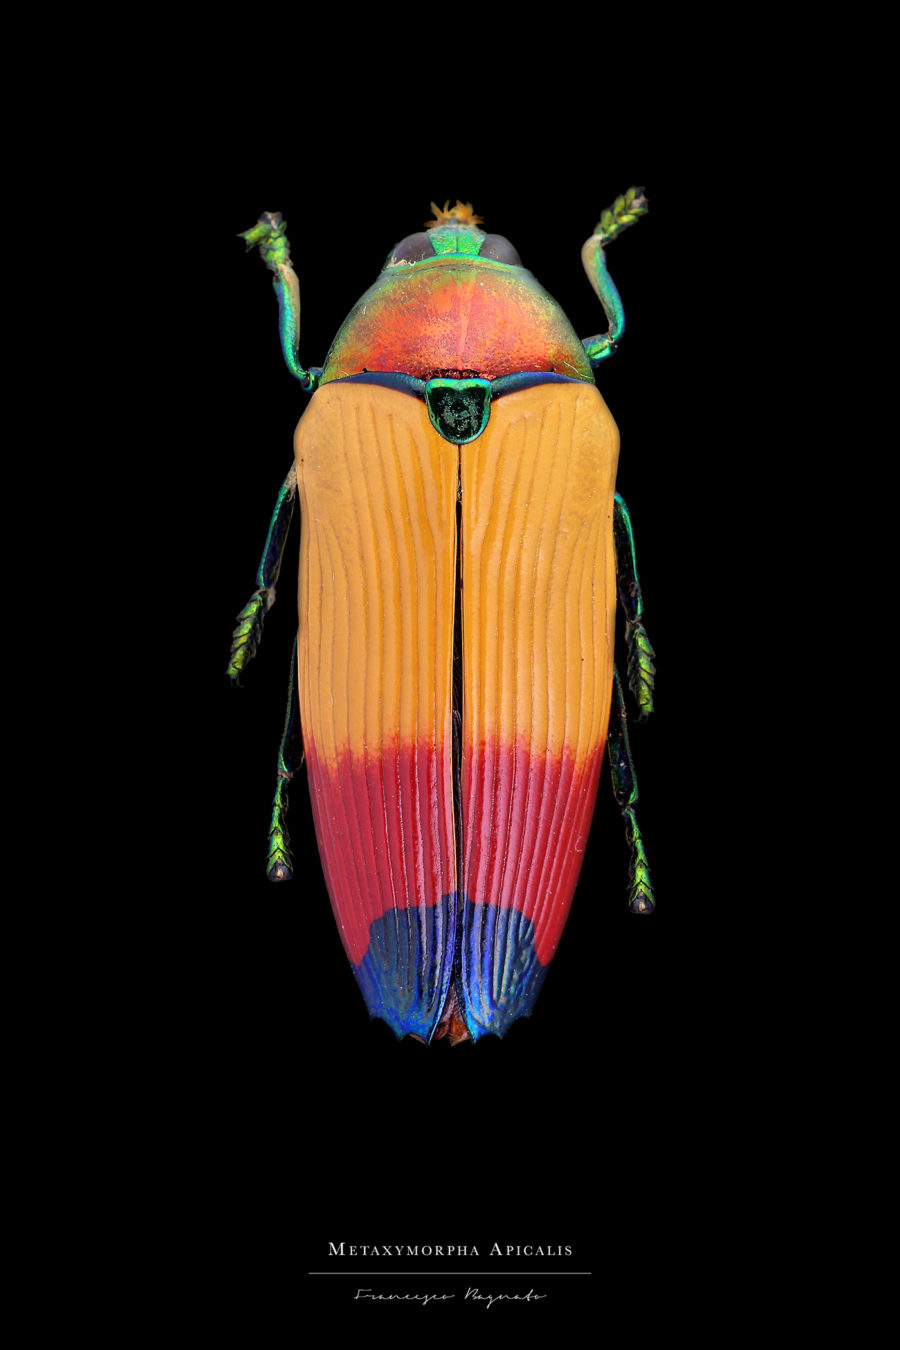 Stunning Pictures of Colourful Insects